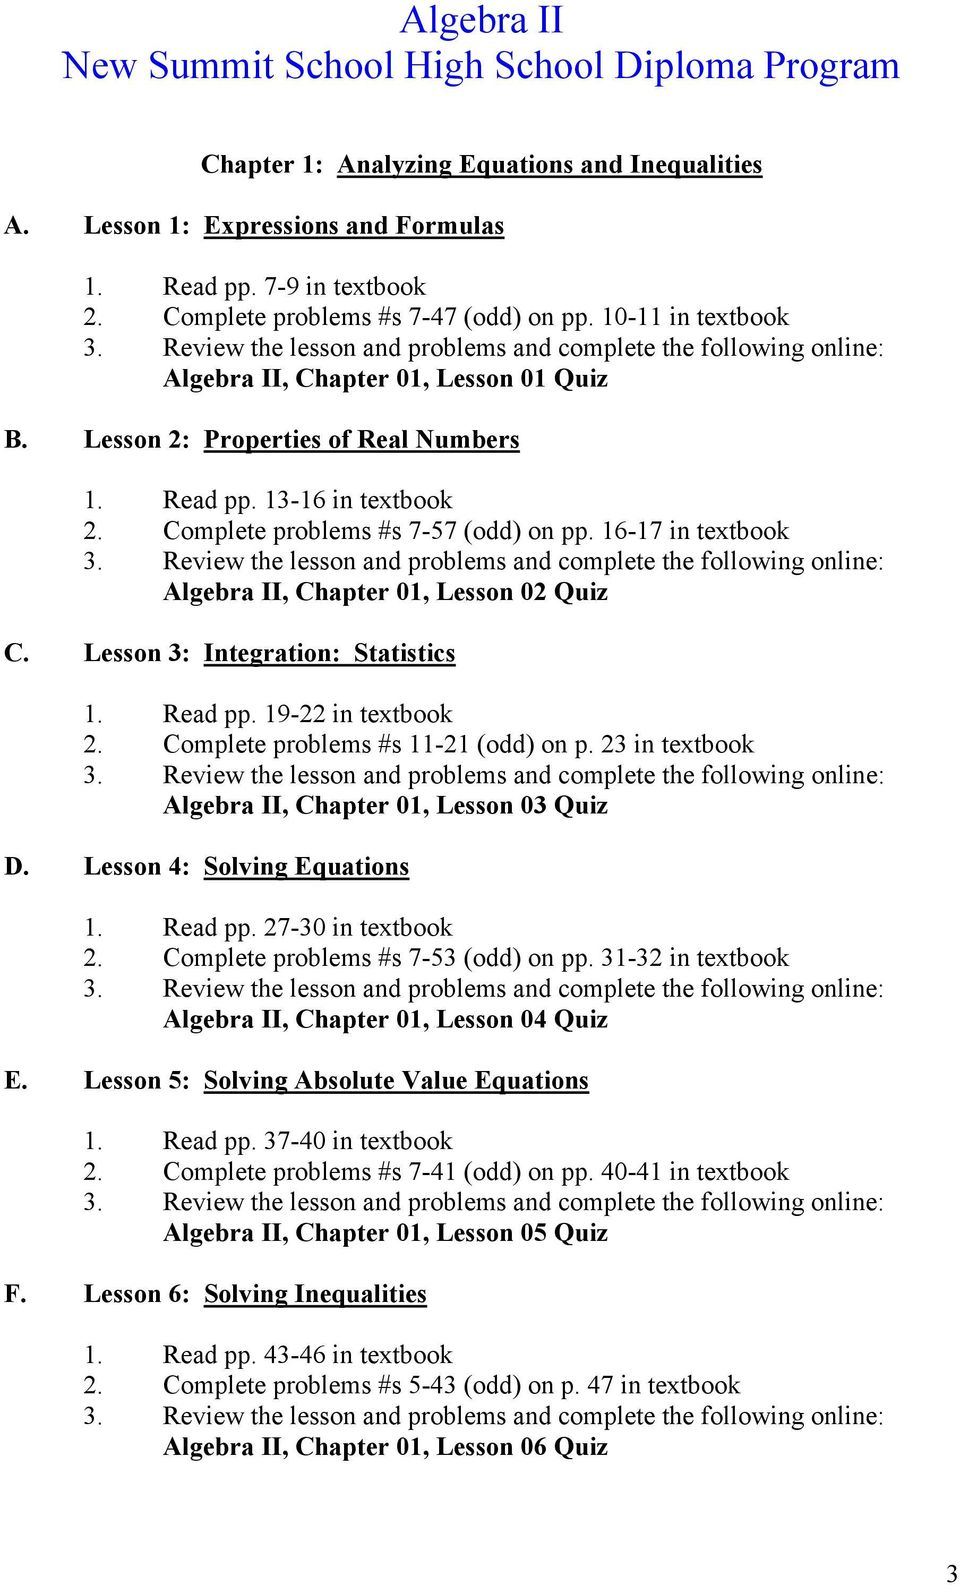 16-17 in textbook Algebra II, Chapter 01, Lesson 02 Quiz C. Lesson 3: Integration: Statistics 1. Read pp. 19-22 in textbook 2. Complete problems #s 11-21 (odd) on p.